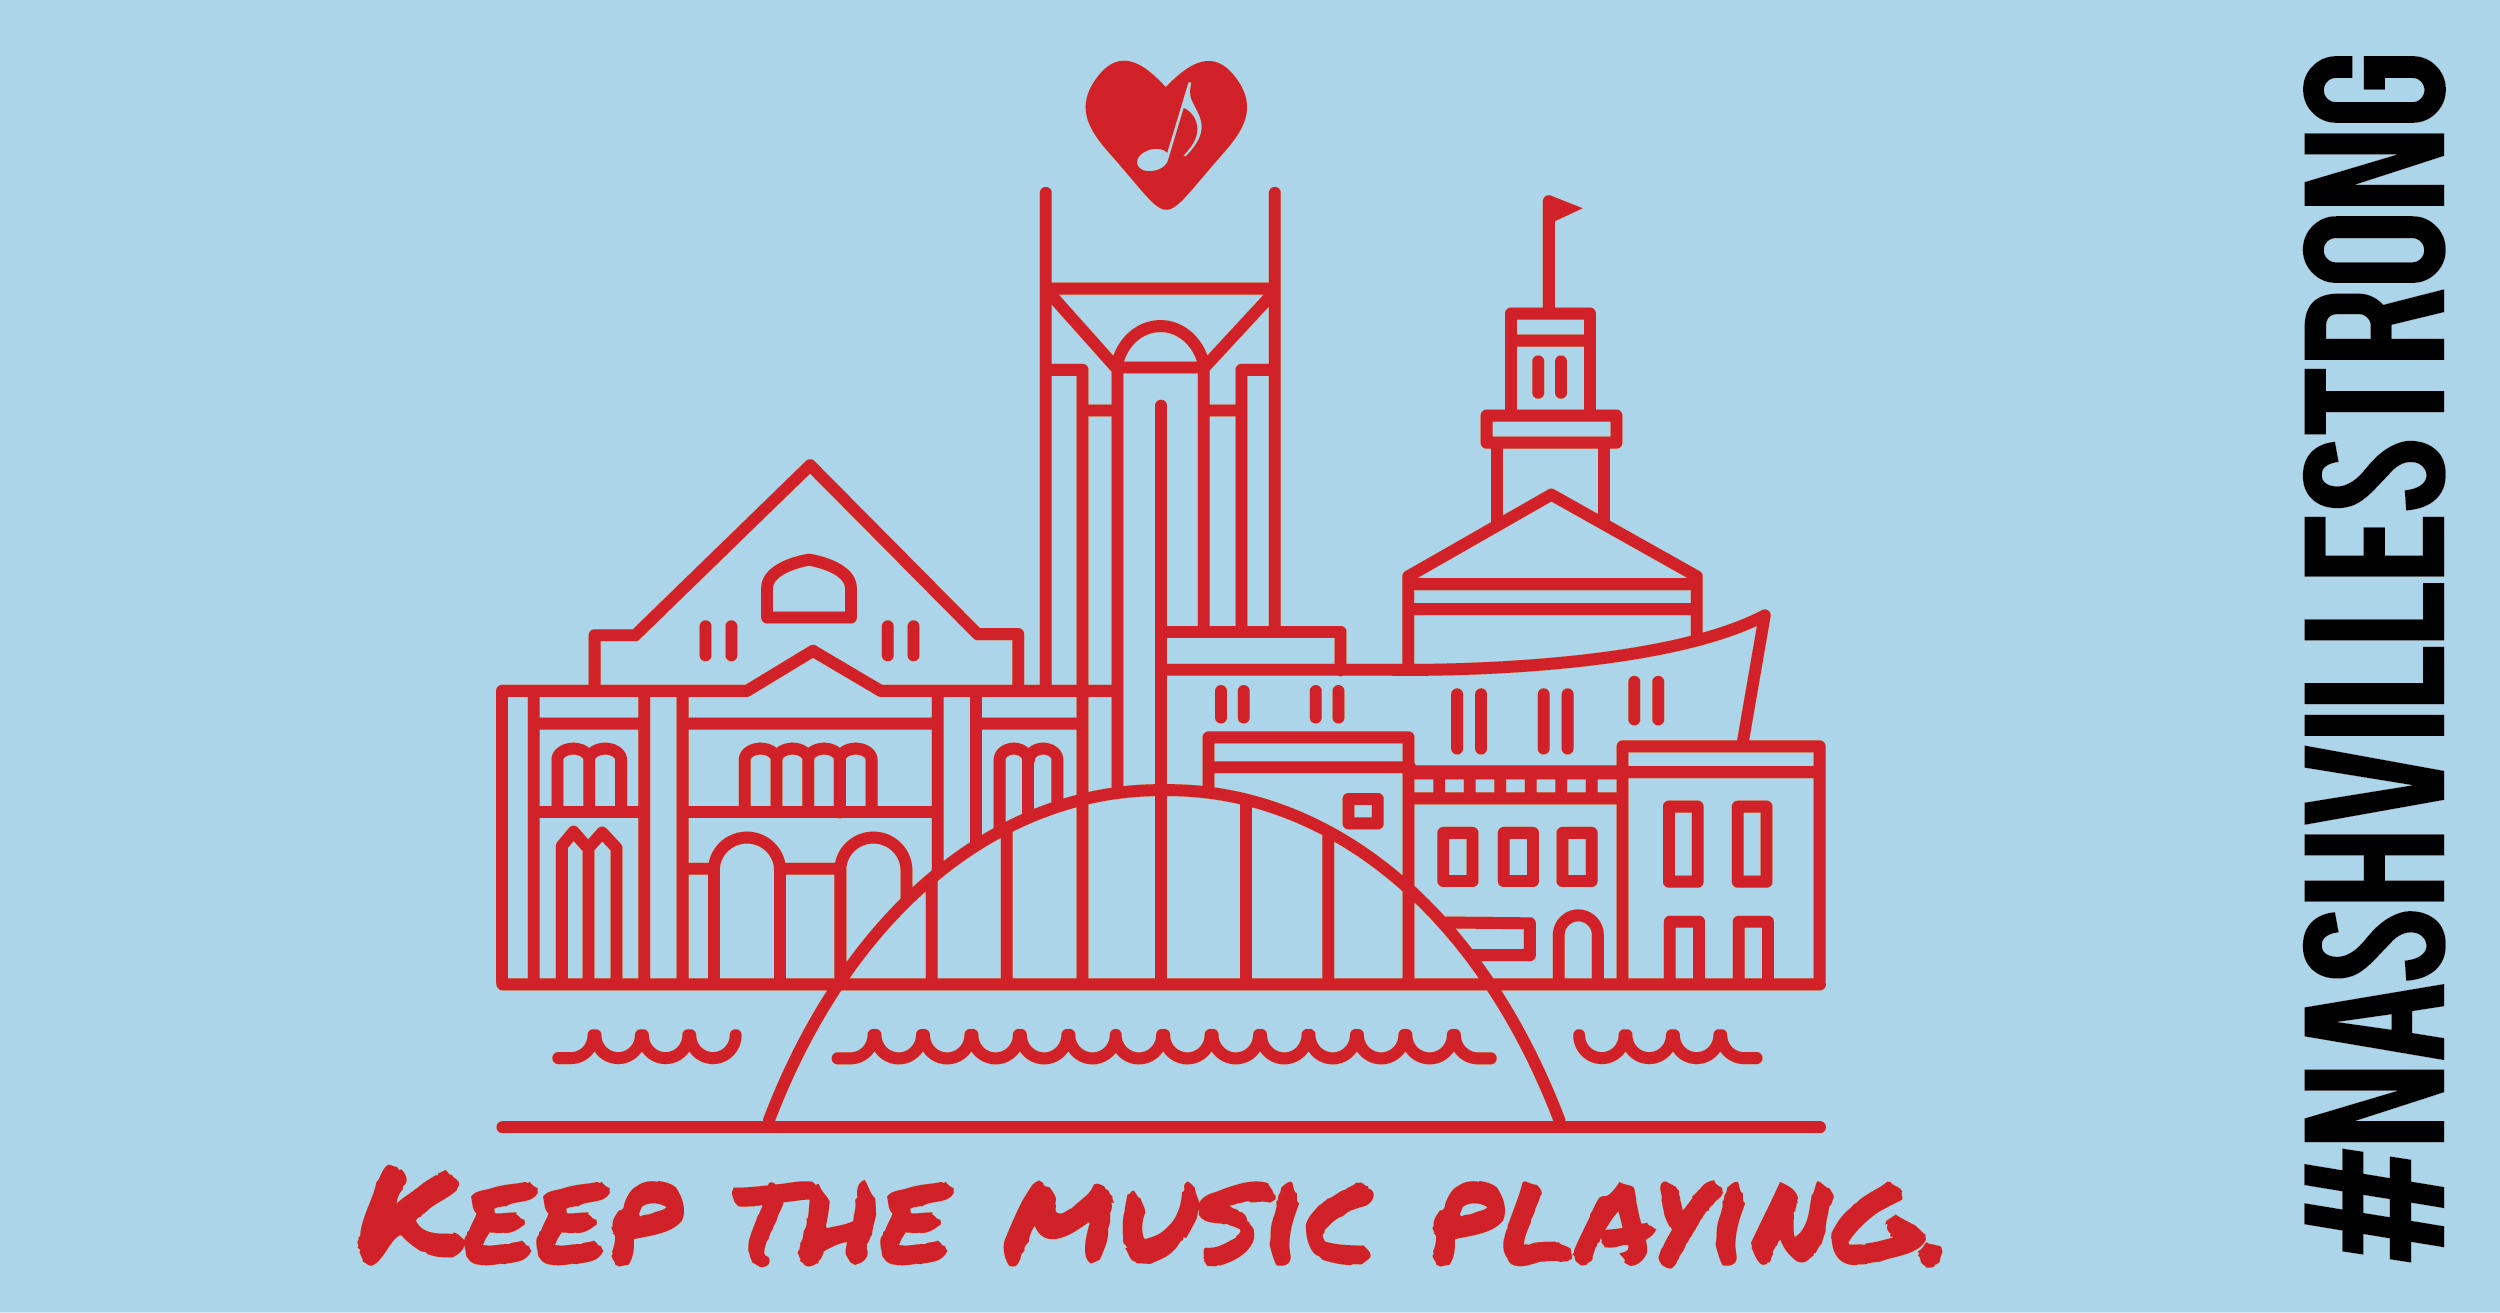 Make #NashvilleStrong By Supporting Efforts And Visiting Again Soon